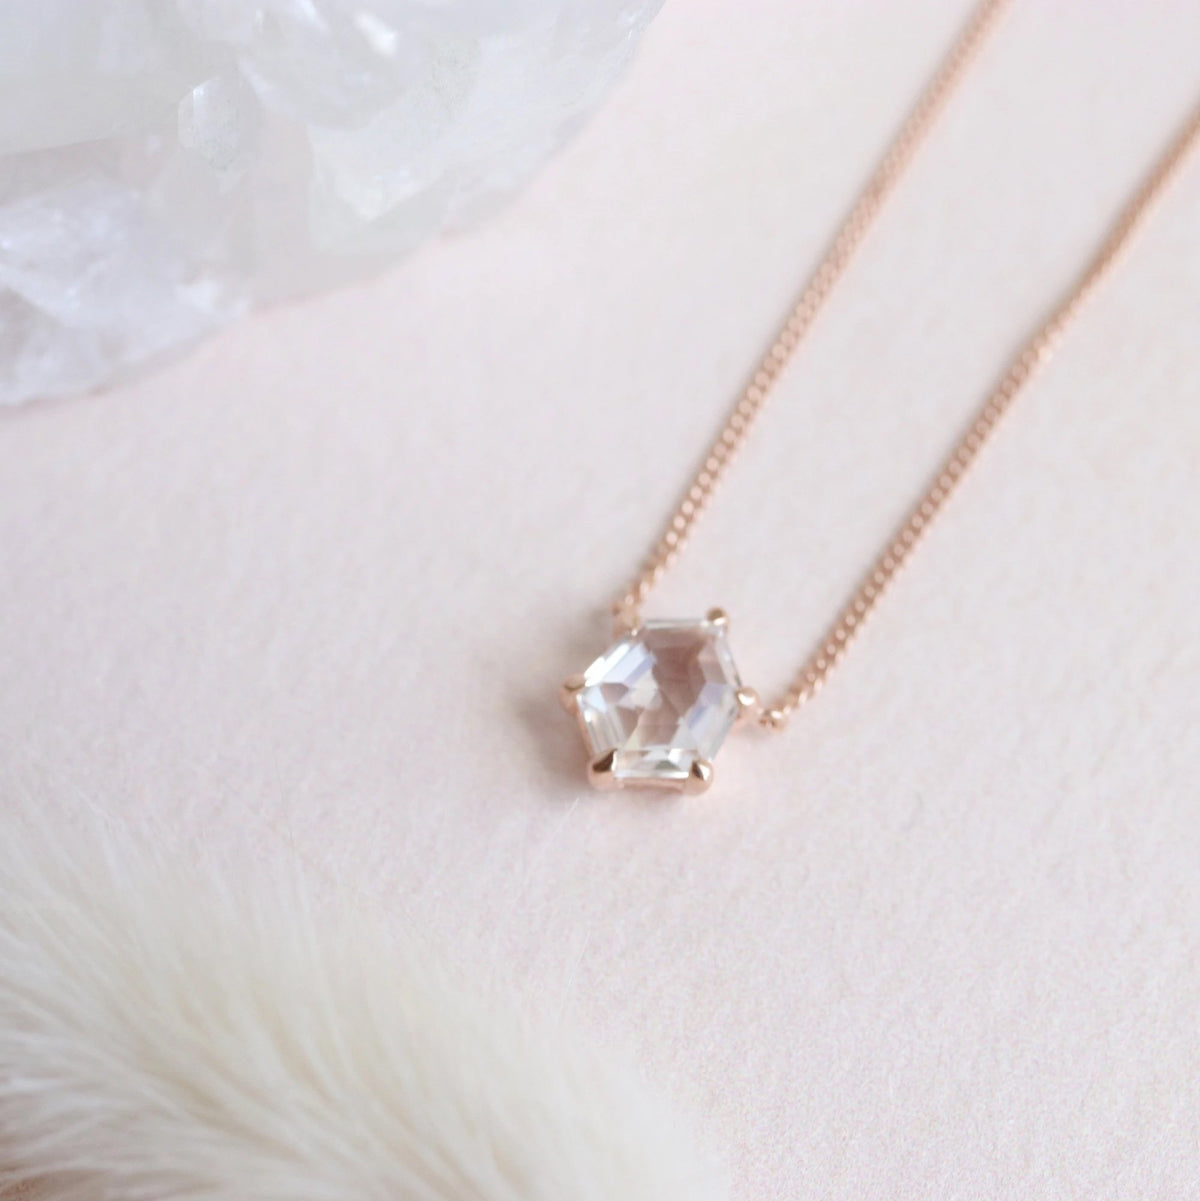 MINI HONOUR NECKLACE - WHITE TOPAZ & ROSE GOLD - SO PRETTY CARA COTTER